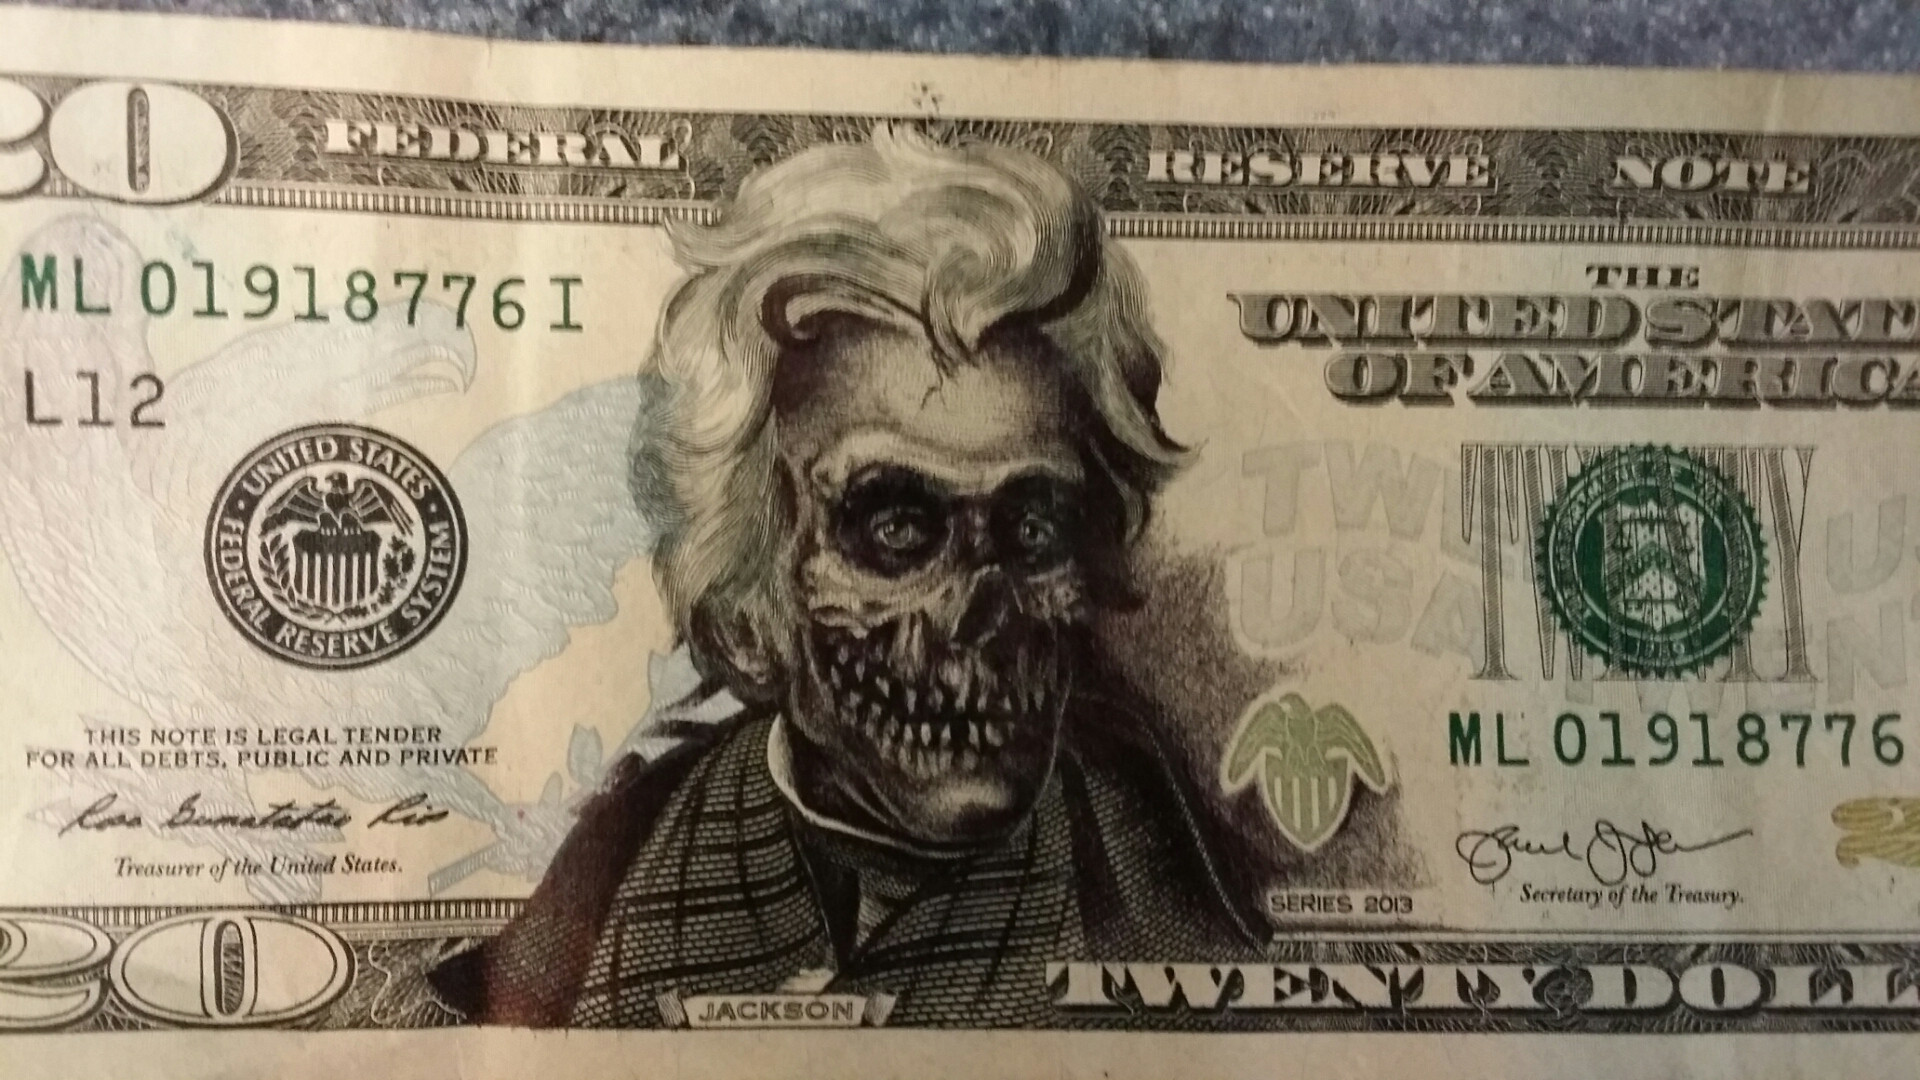 1920x1080 25 - 50 Brilliantly Defaced Dollar Bill Wins